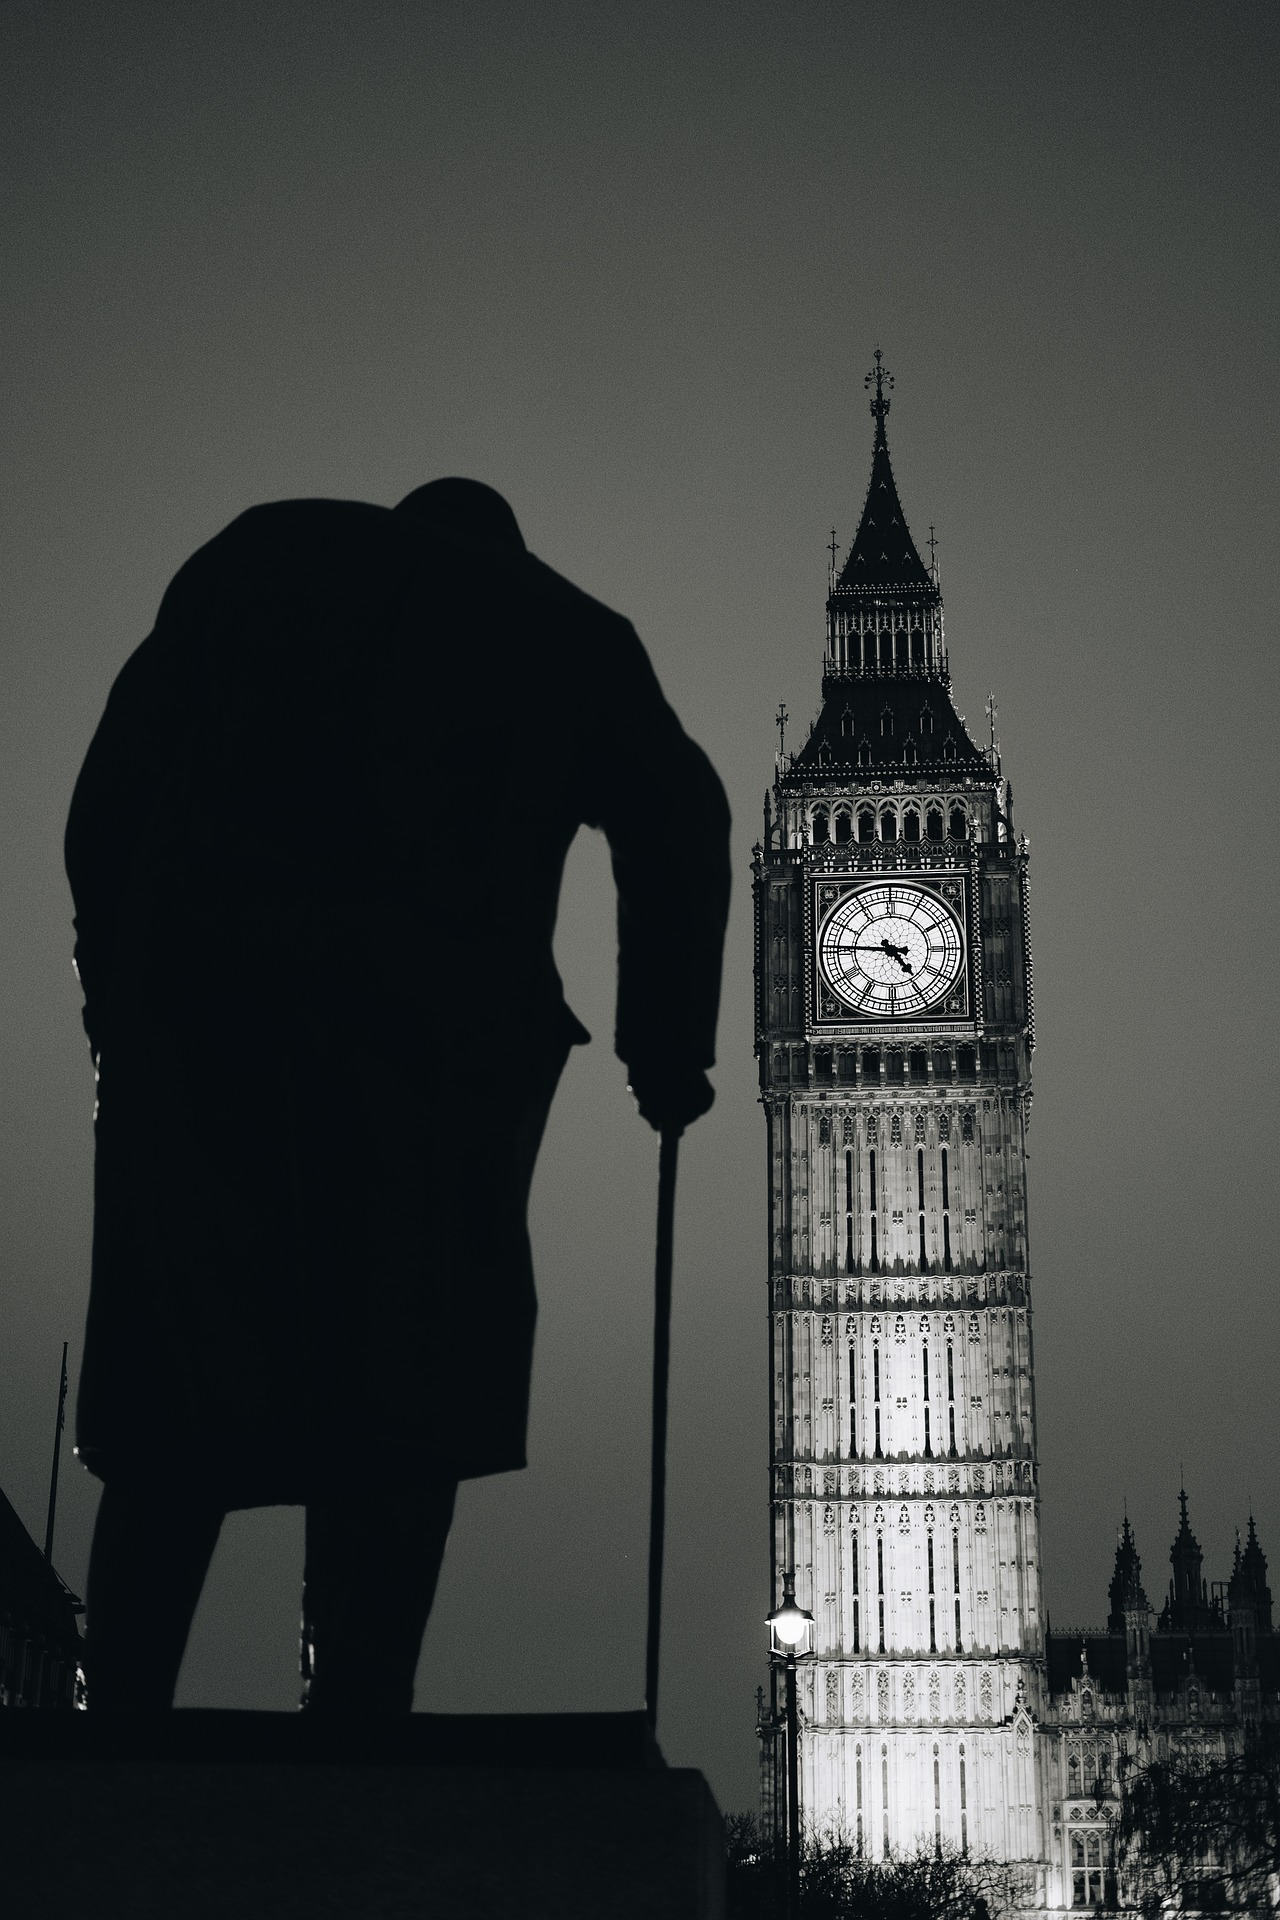 Statue of Winston Churchill outside Big Ben at night